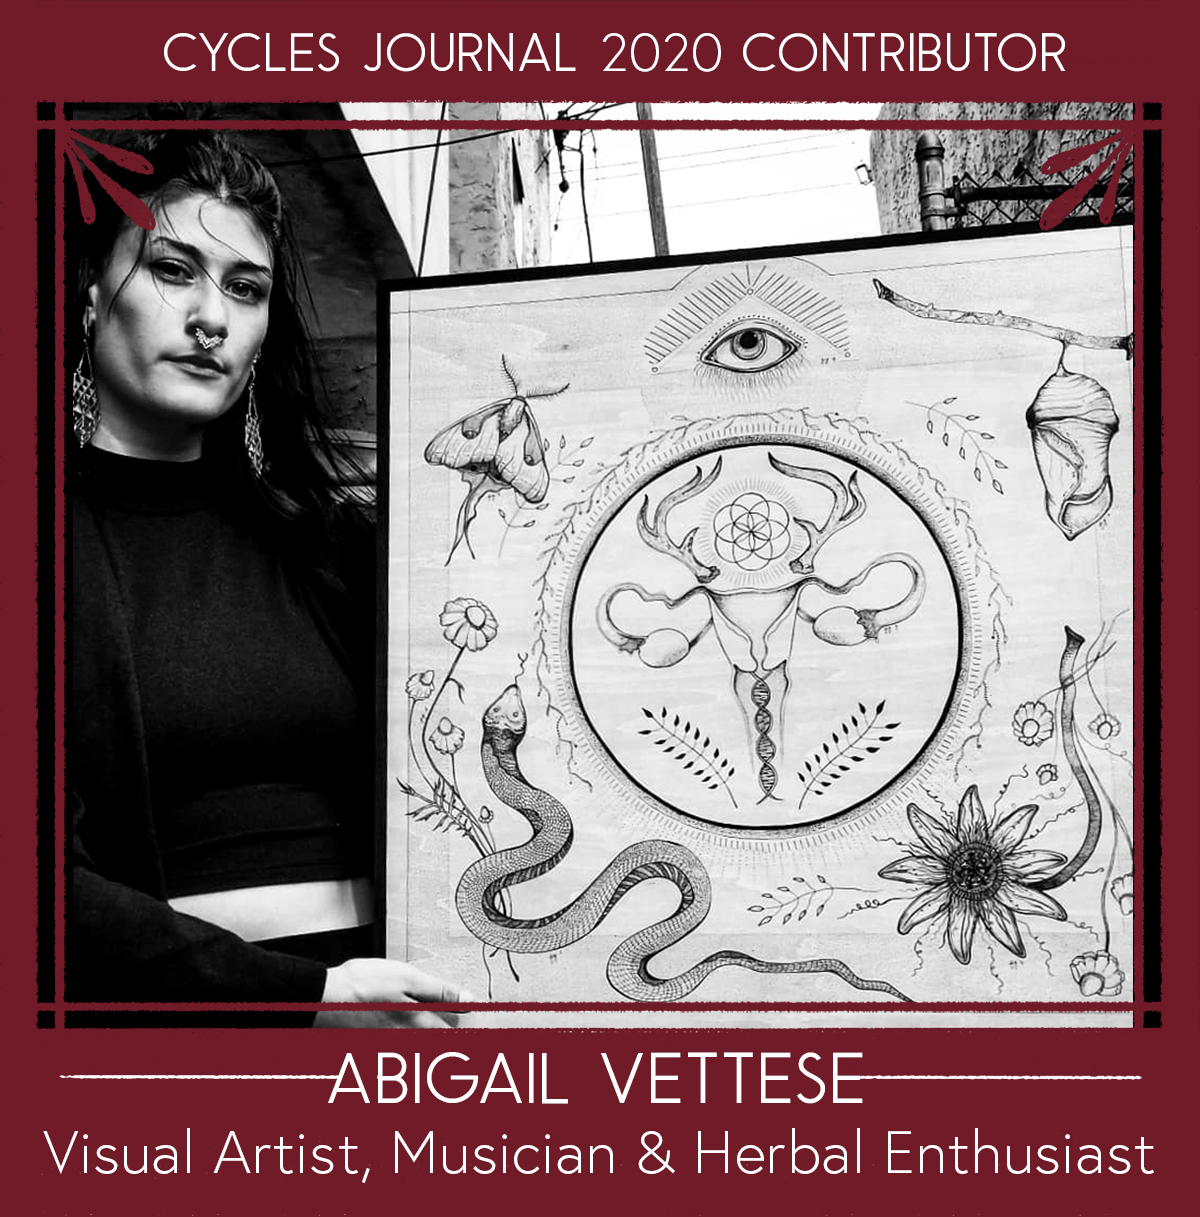 """Abigail Vettese - Visual Artist, Musician & Herbal EnthusiastAbigail Vettese is a Philadelphia based artist, herbal enthusiast, and environmentalist. Her vision is to release trauma through art, natural wellness, and intentional living.""""I believe in art as a form of alchemy, allowing us to transmute our experiences into something meaningful. Through the birth of creative ideas, we develop a superconscious lens through which we can explore life and connect with our own divinity, and more importantly, I believe we can heal through the manifestation of these concepts."""